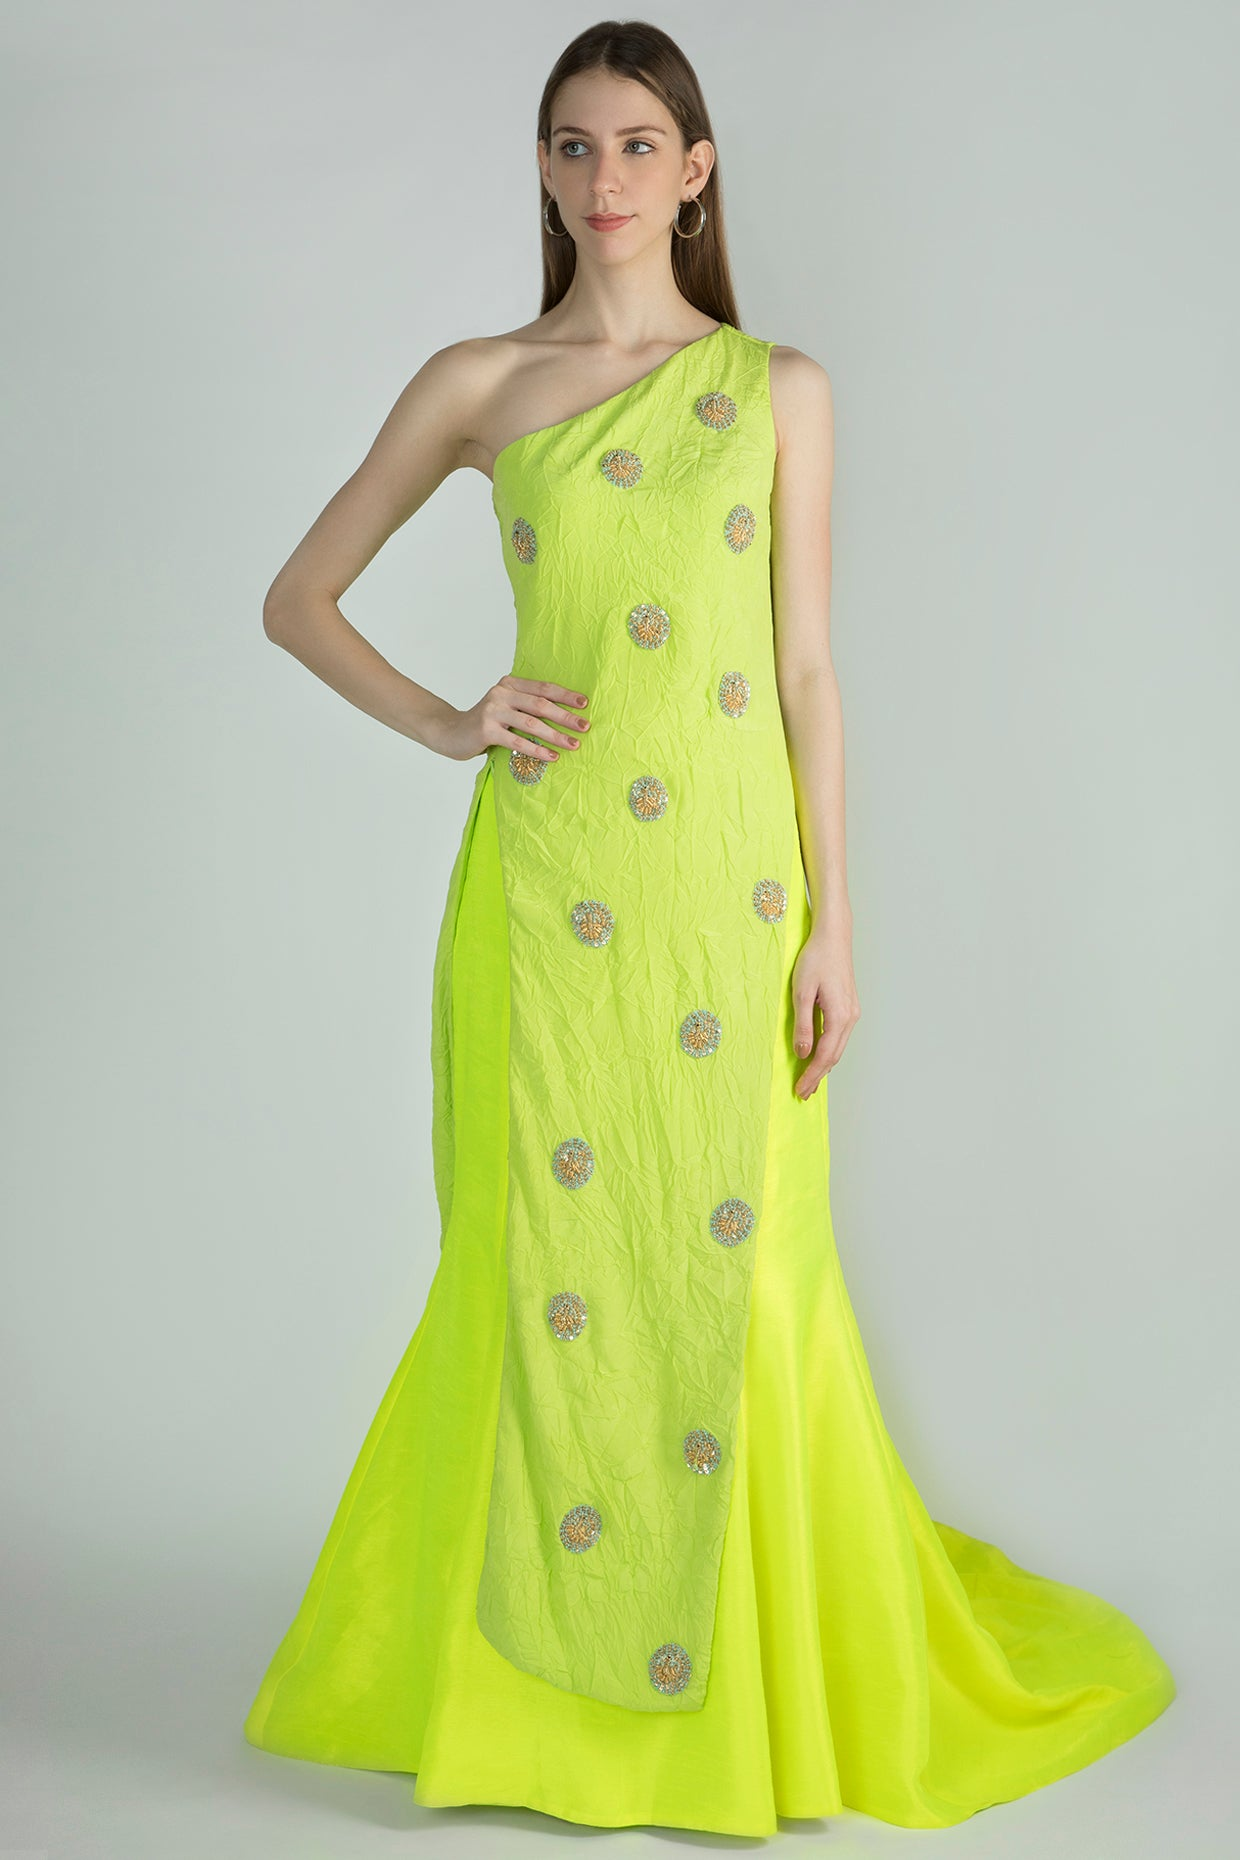 GREEN CRUSH ONE SHOULDER ASYMMETRIC EMBROIDERED TOP & NEON LEHENGA - The Grand Trunk